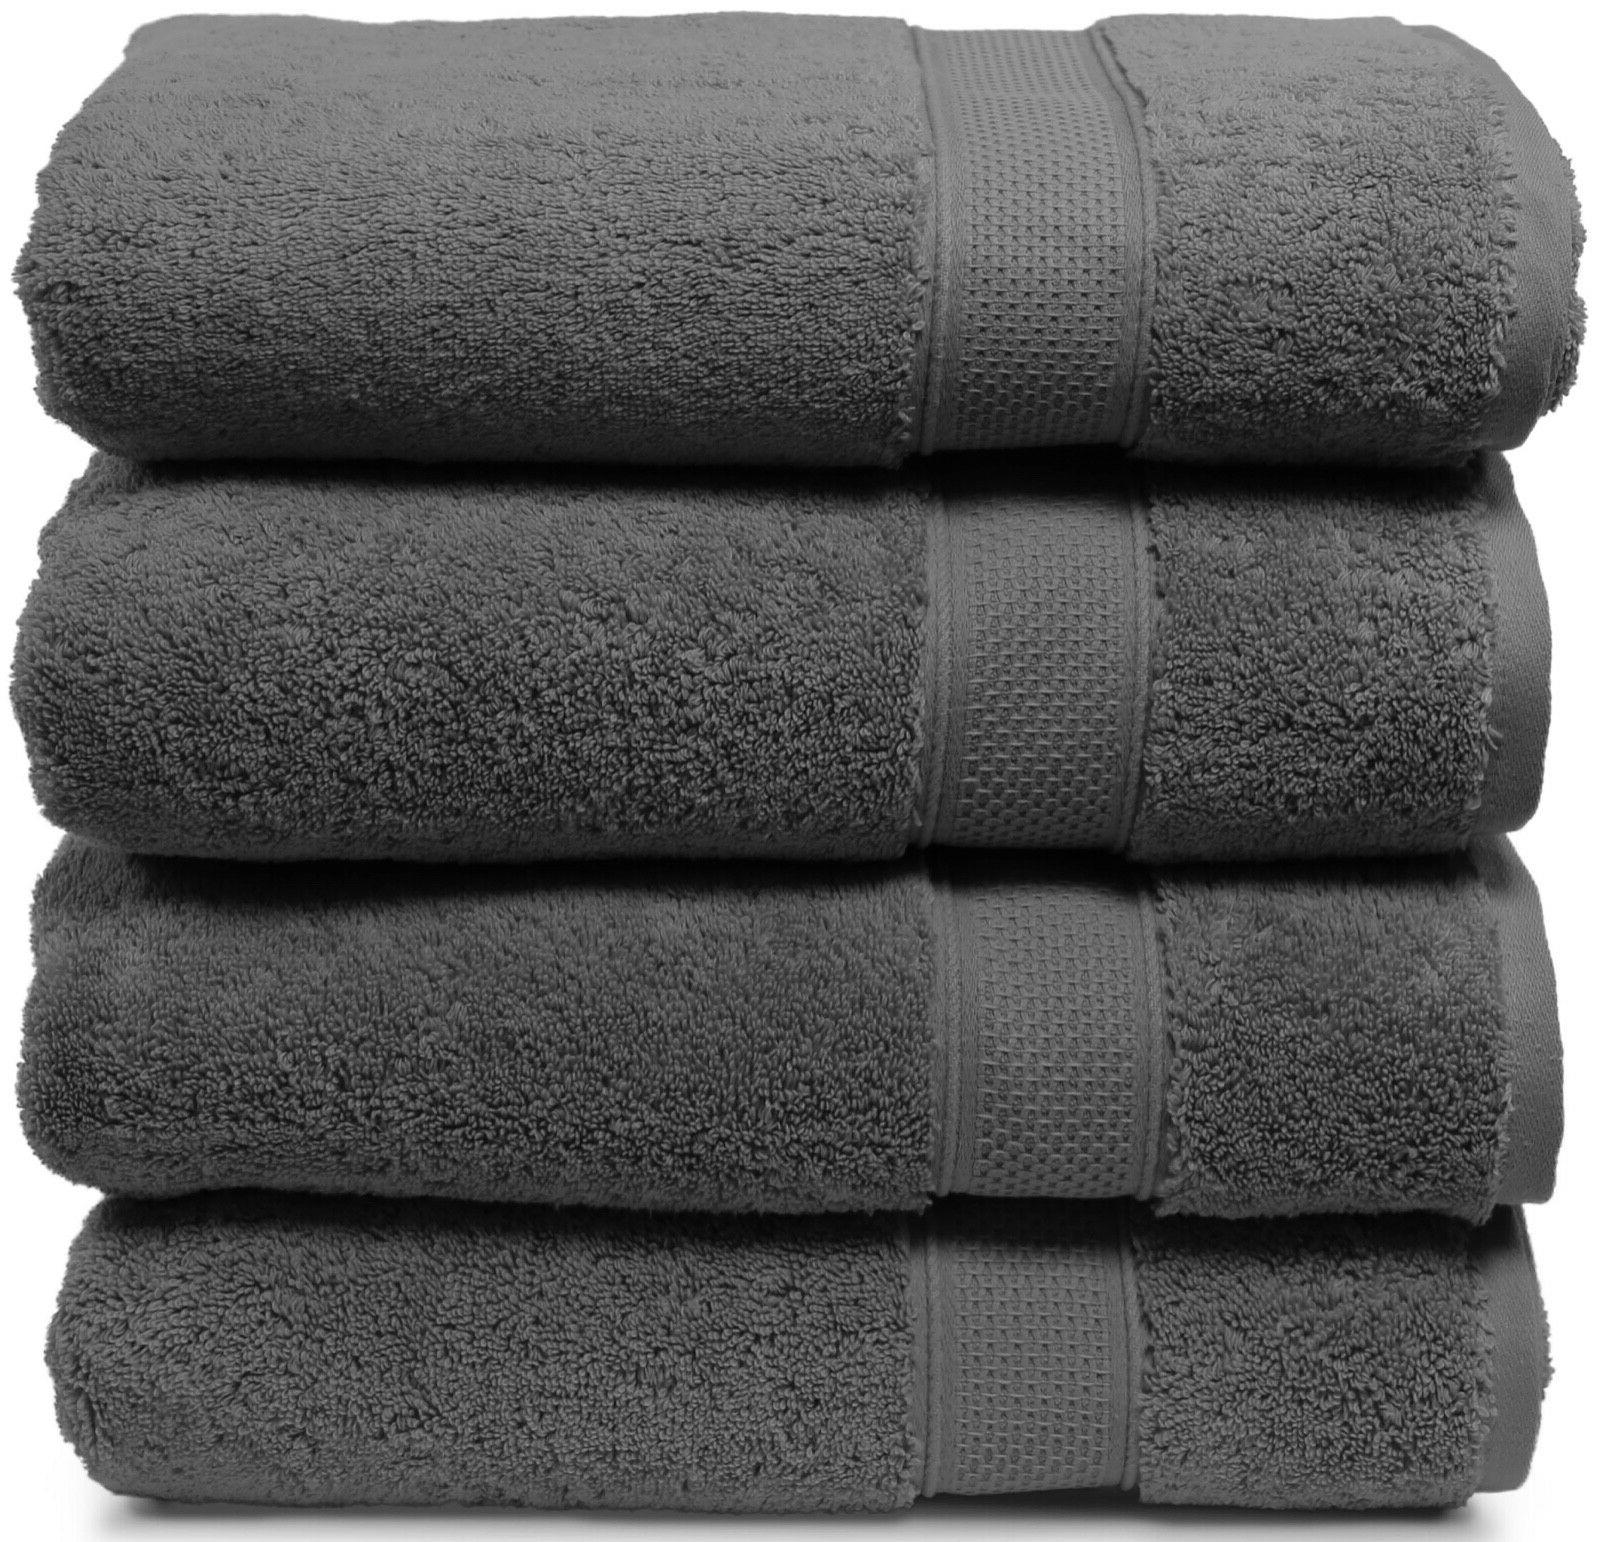 Bath Cotton 4 Extra Large Plush Absorbent